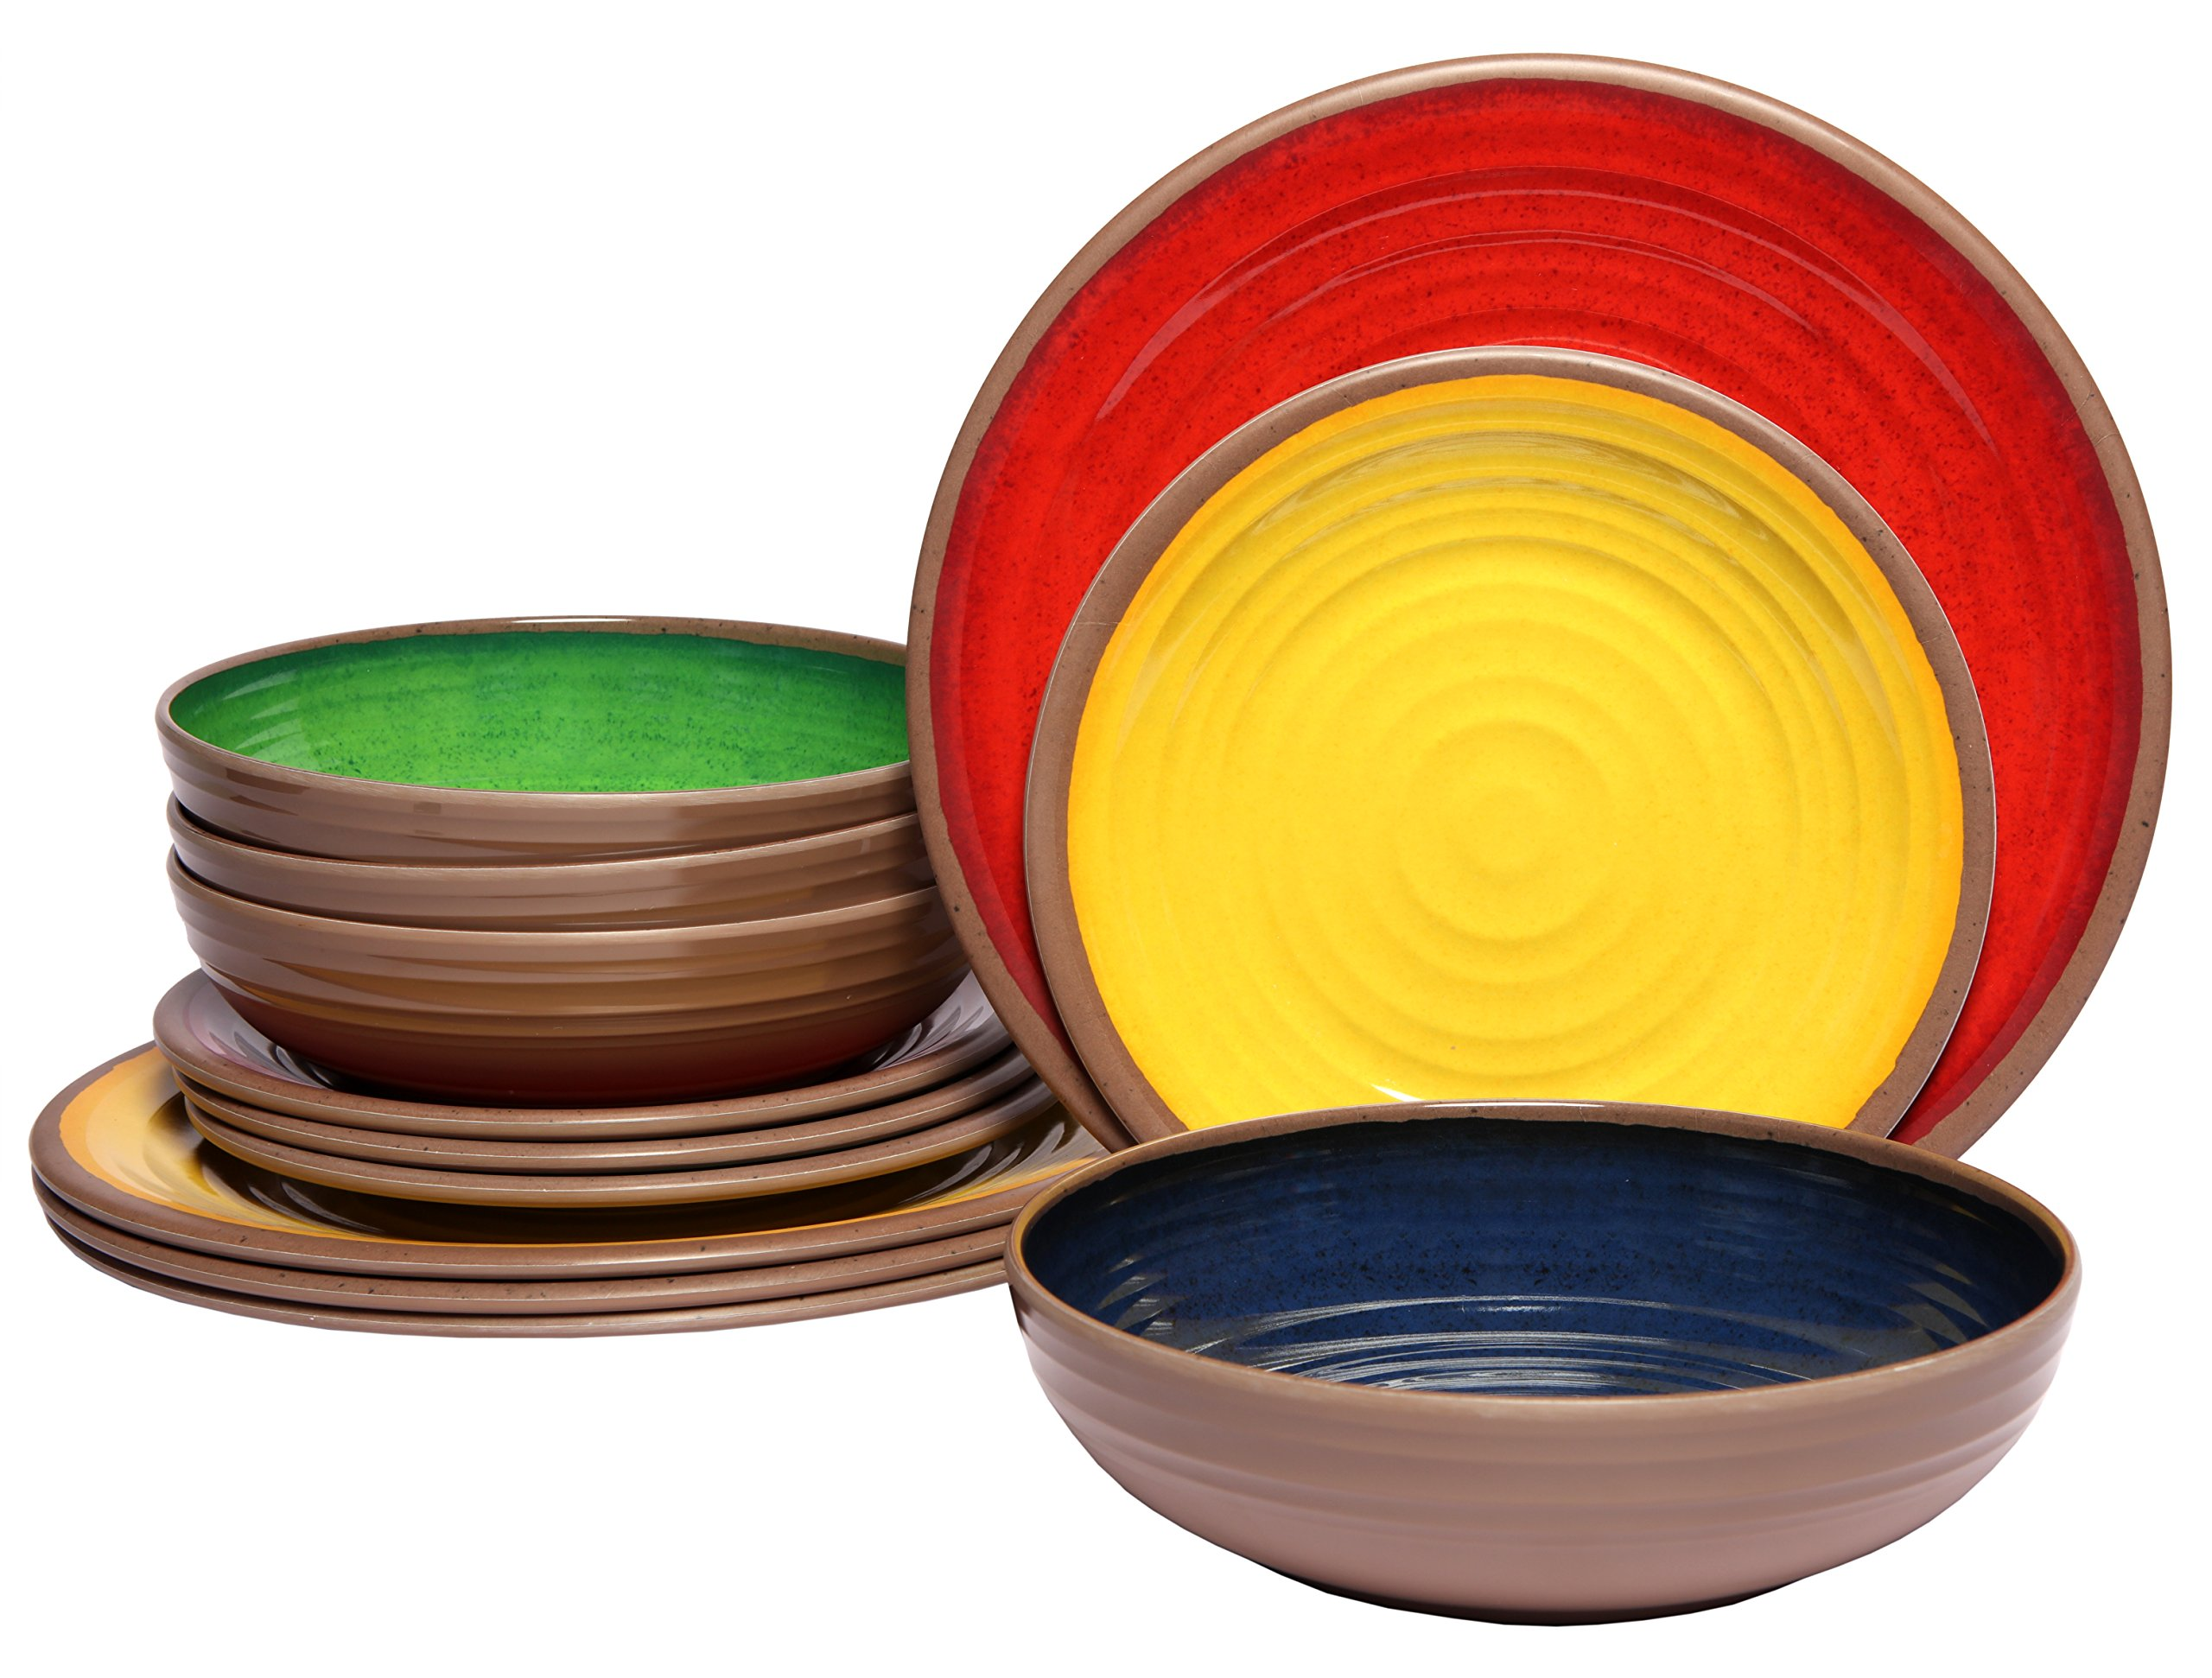 Melange 12-Piece 100% Melamine Dinnerware Set (Clay Collection) | Shatter-Proof and Chip-Resistant Melamine Plates and Bowls | Color Multicolor | Dinner Plate, Salad Plate & Soup Bowl (4 Each) by Melange (Image #1)